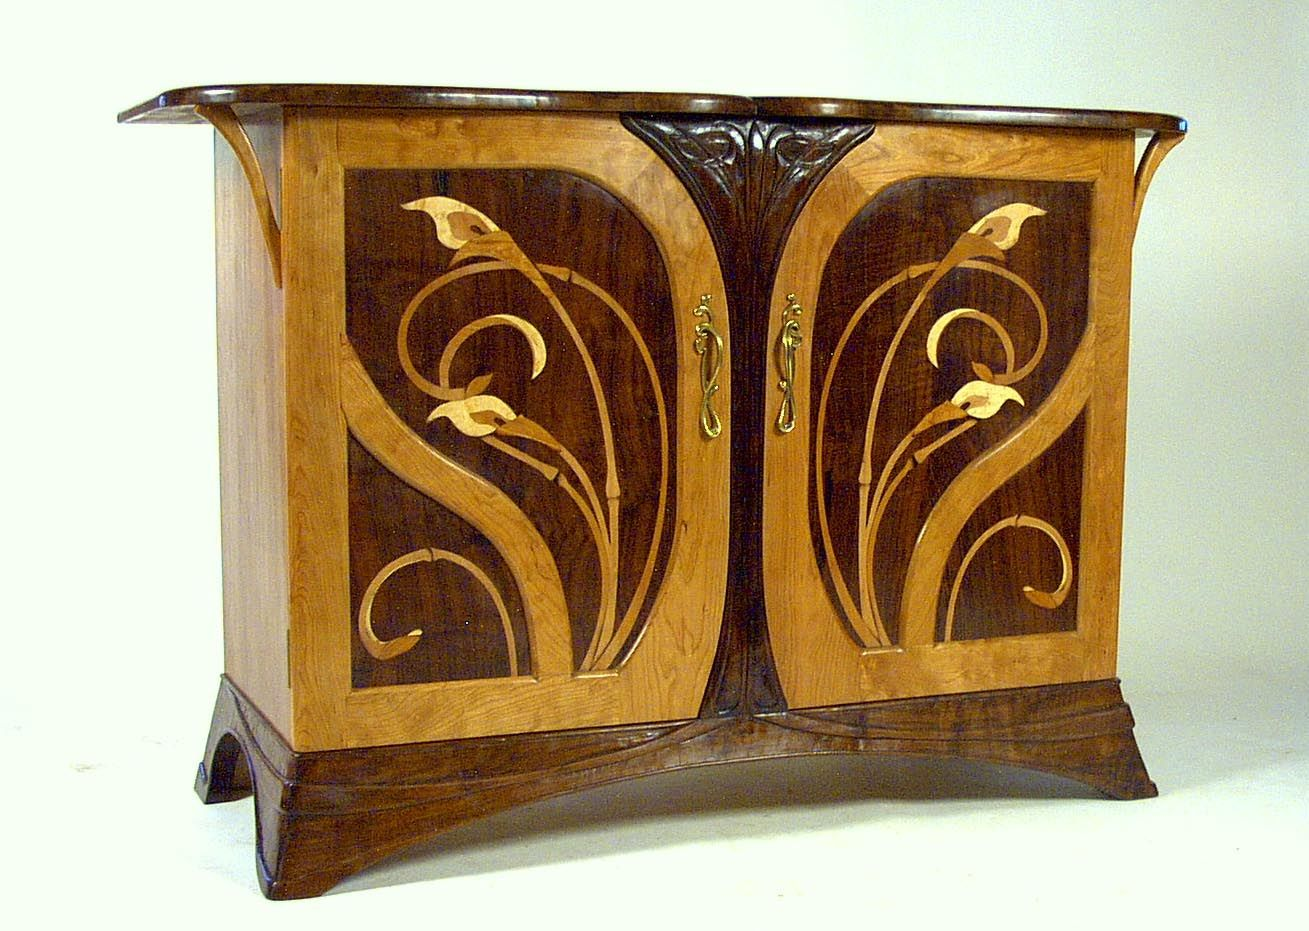 Art nouveau design movement images for D furniture galleries